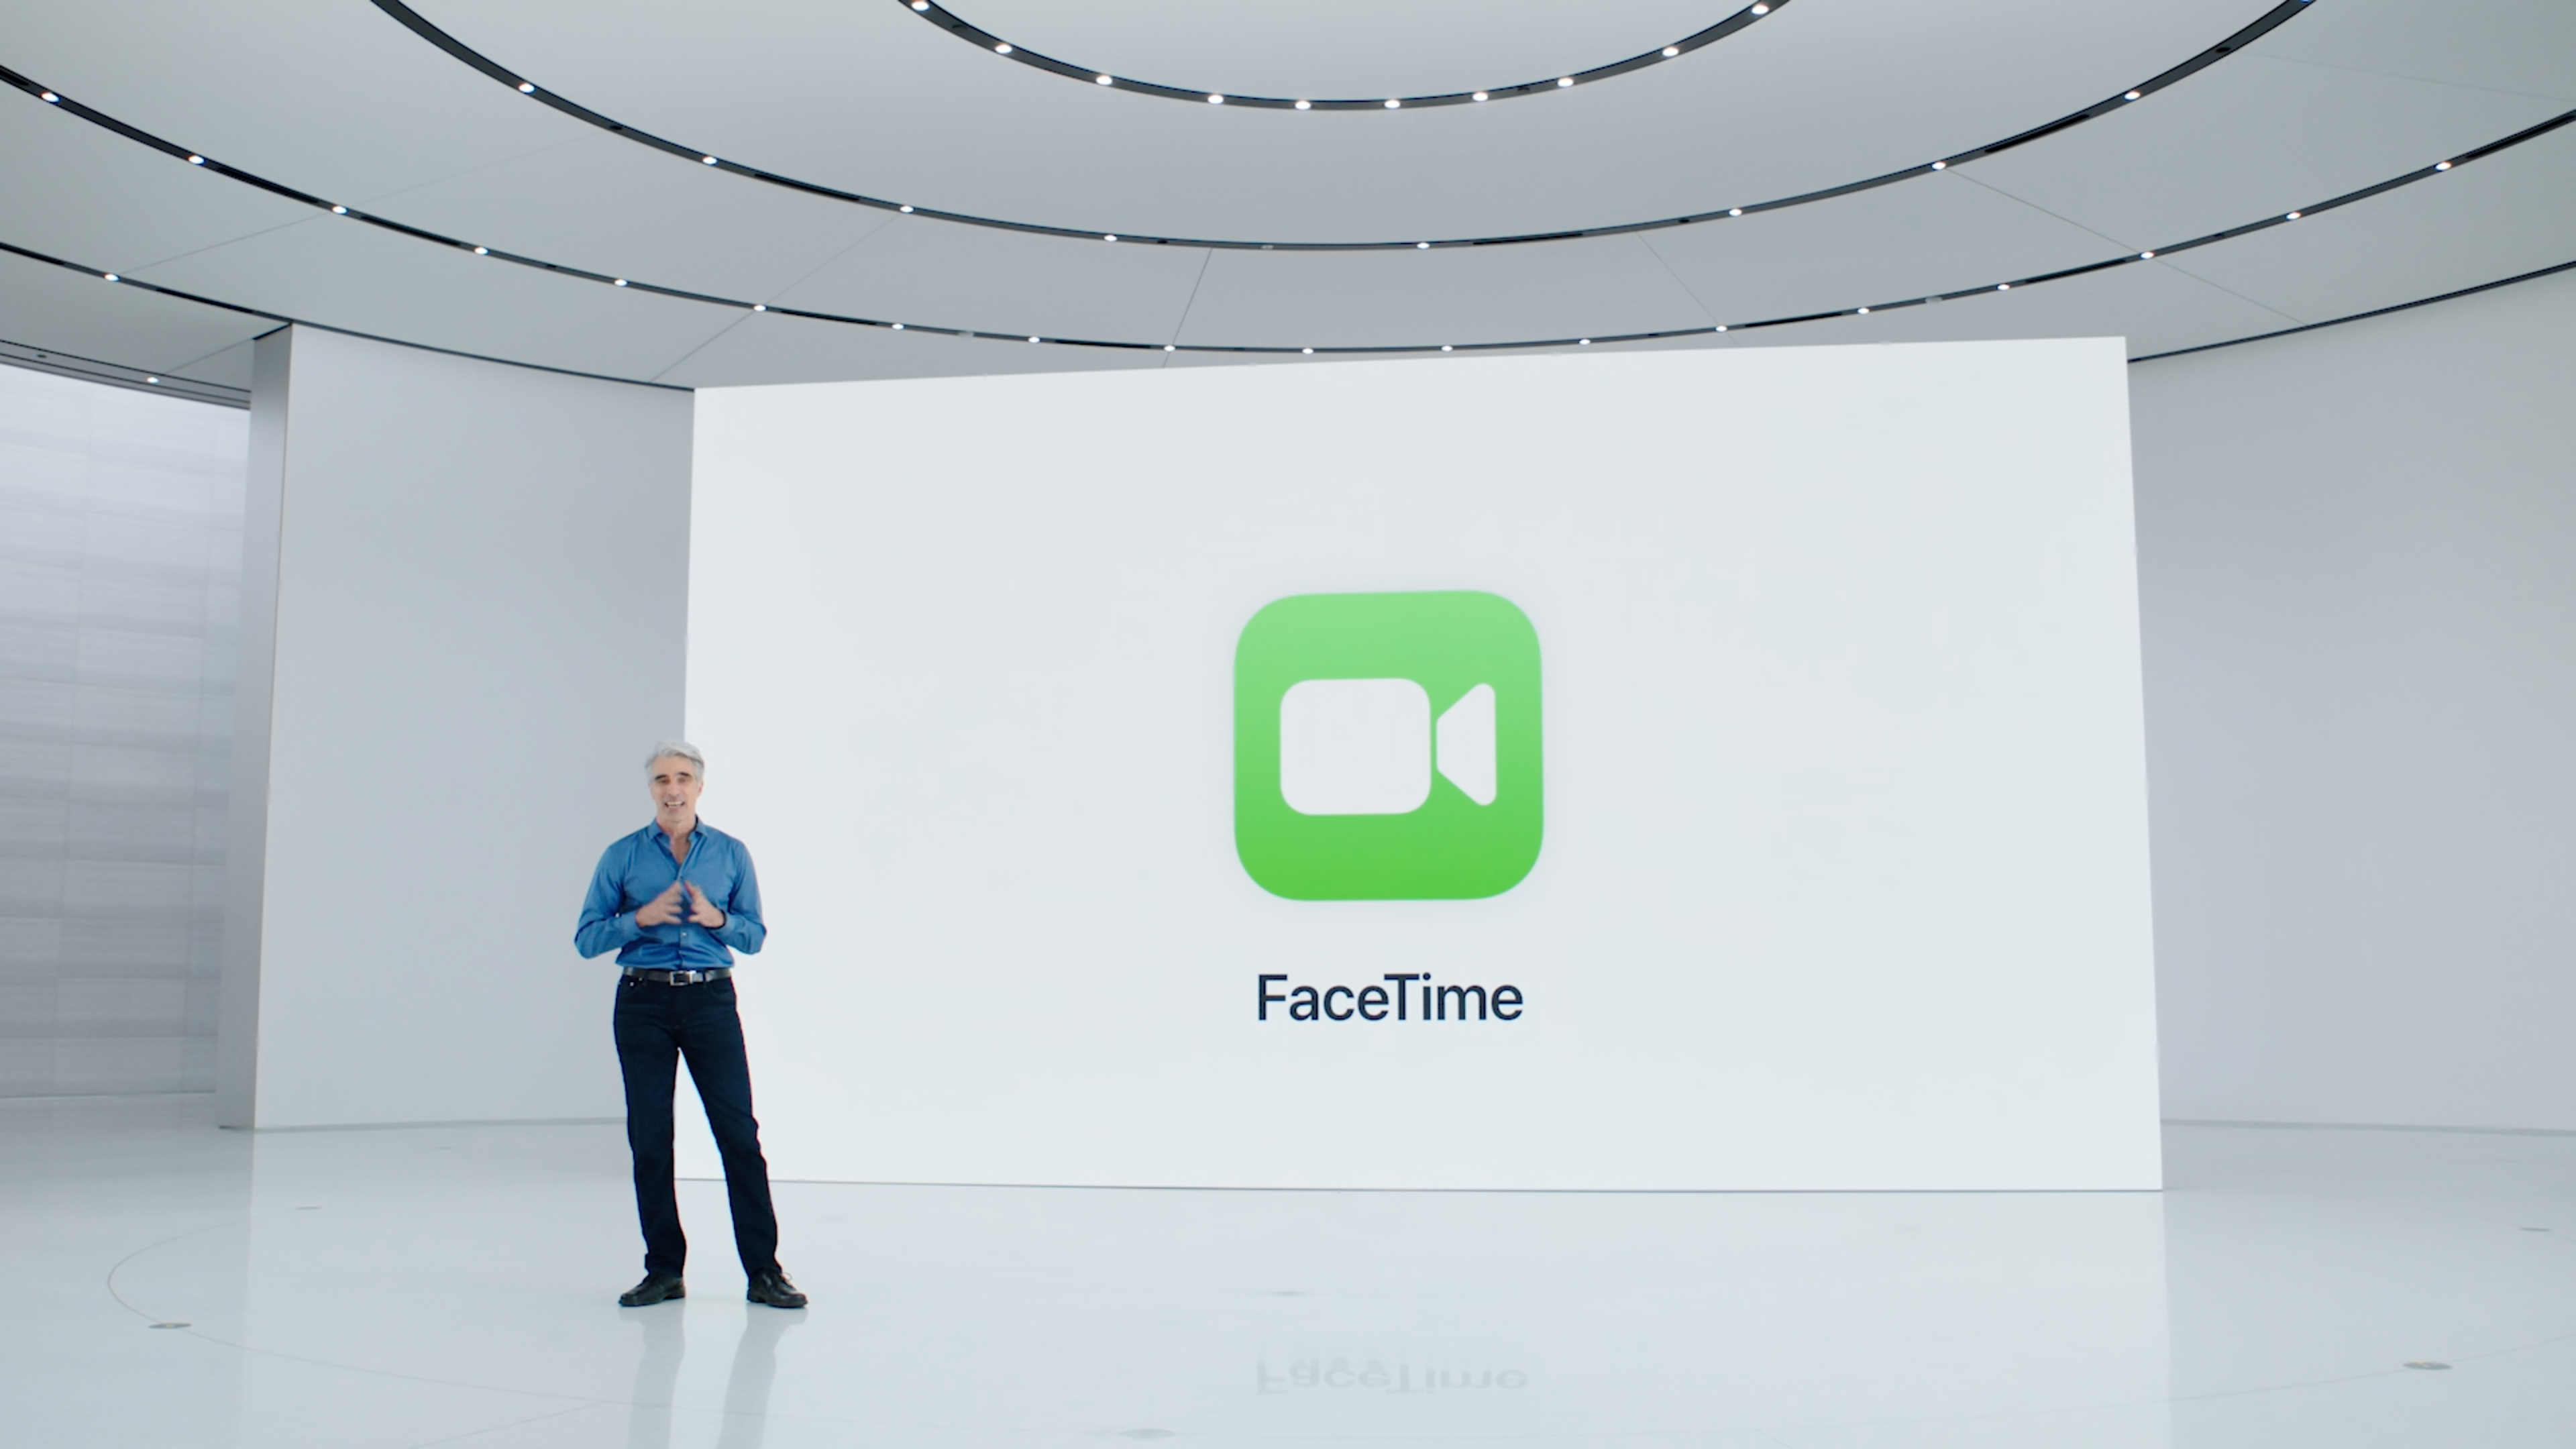 FaceTime on Android: Apple announces major upgrades at WWDC - CNET